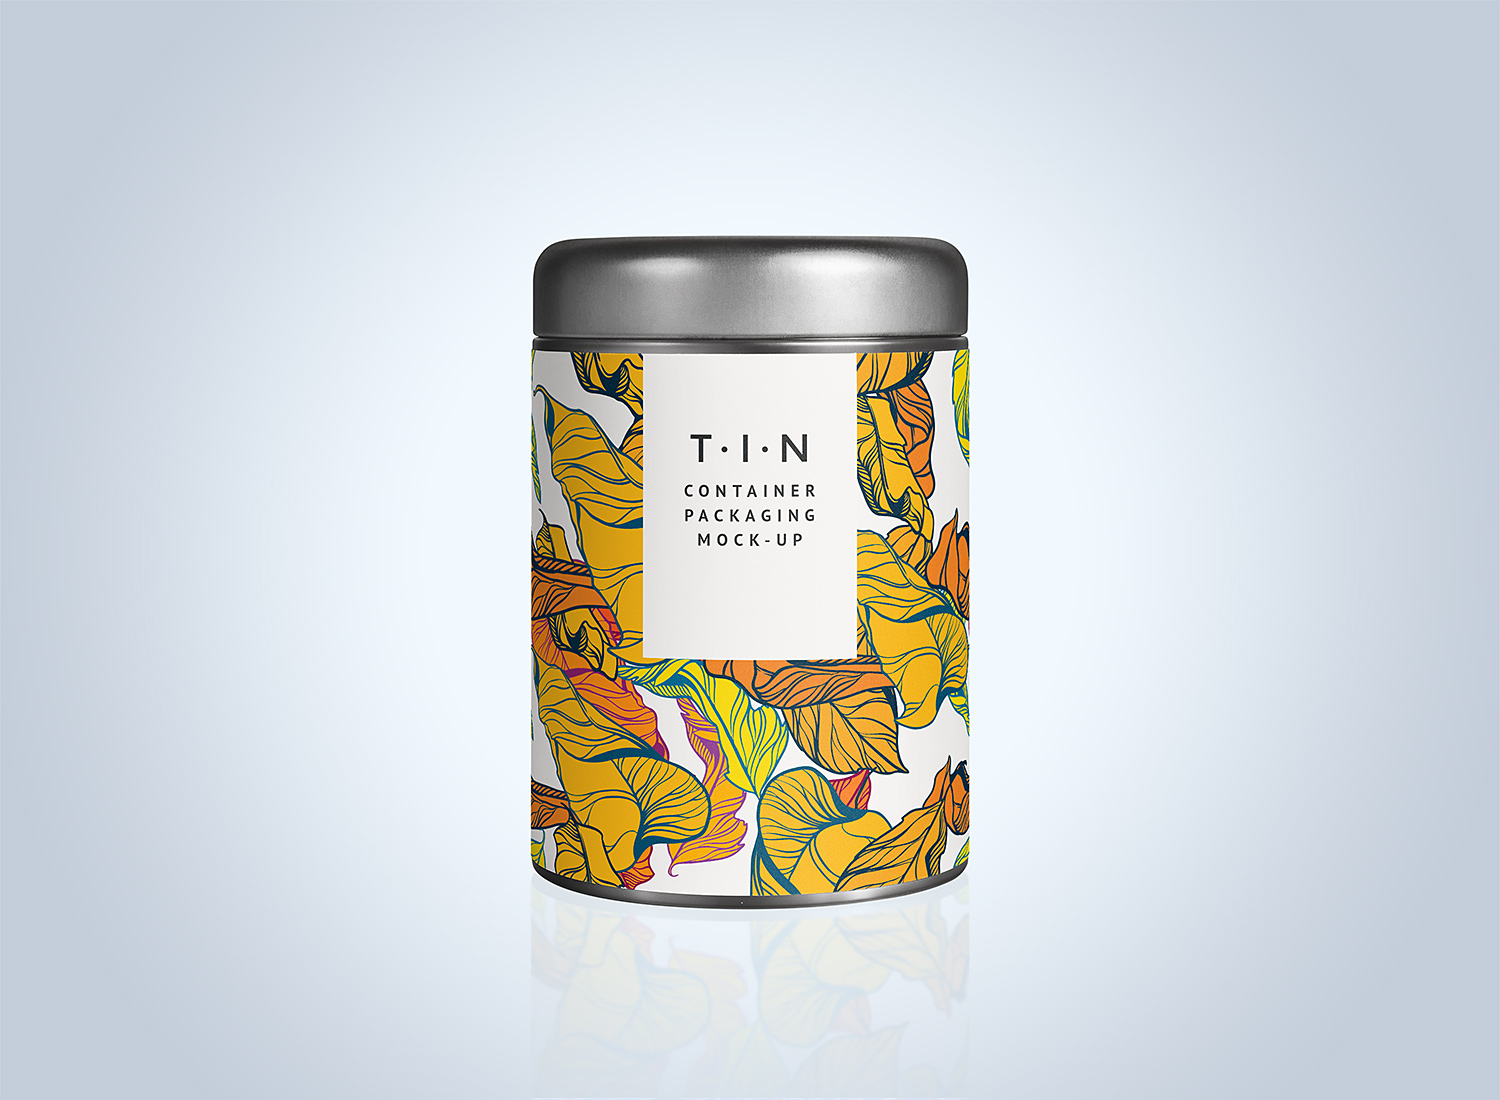 Tin Container Packaging Mockup PSD